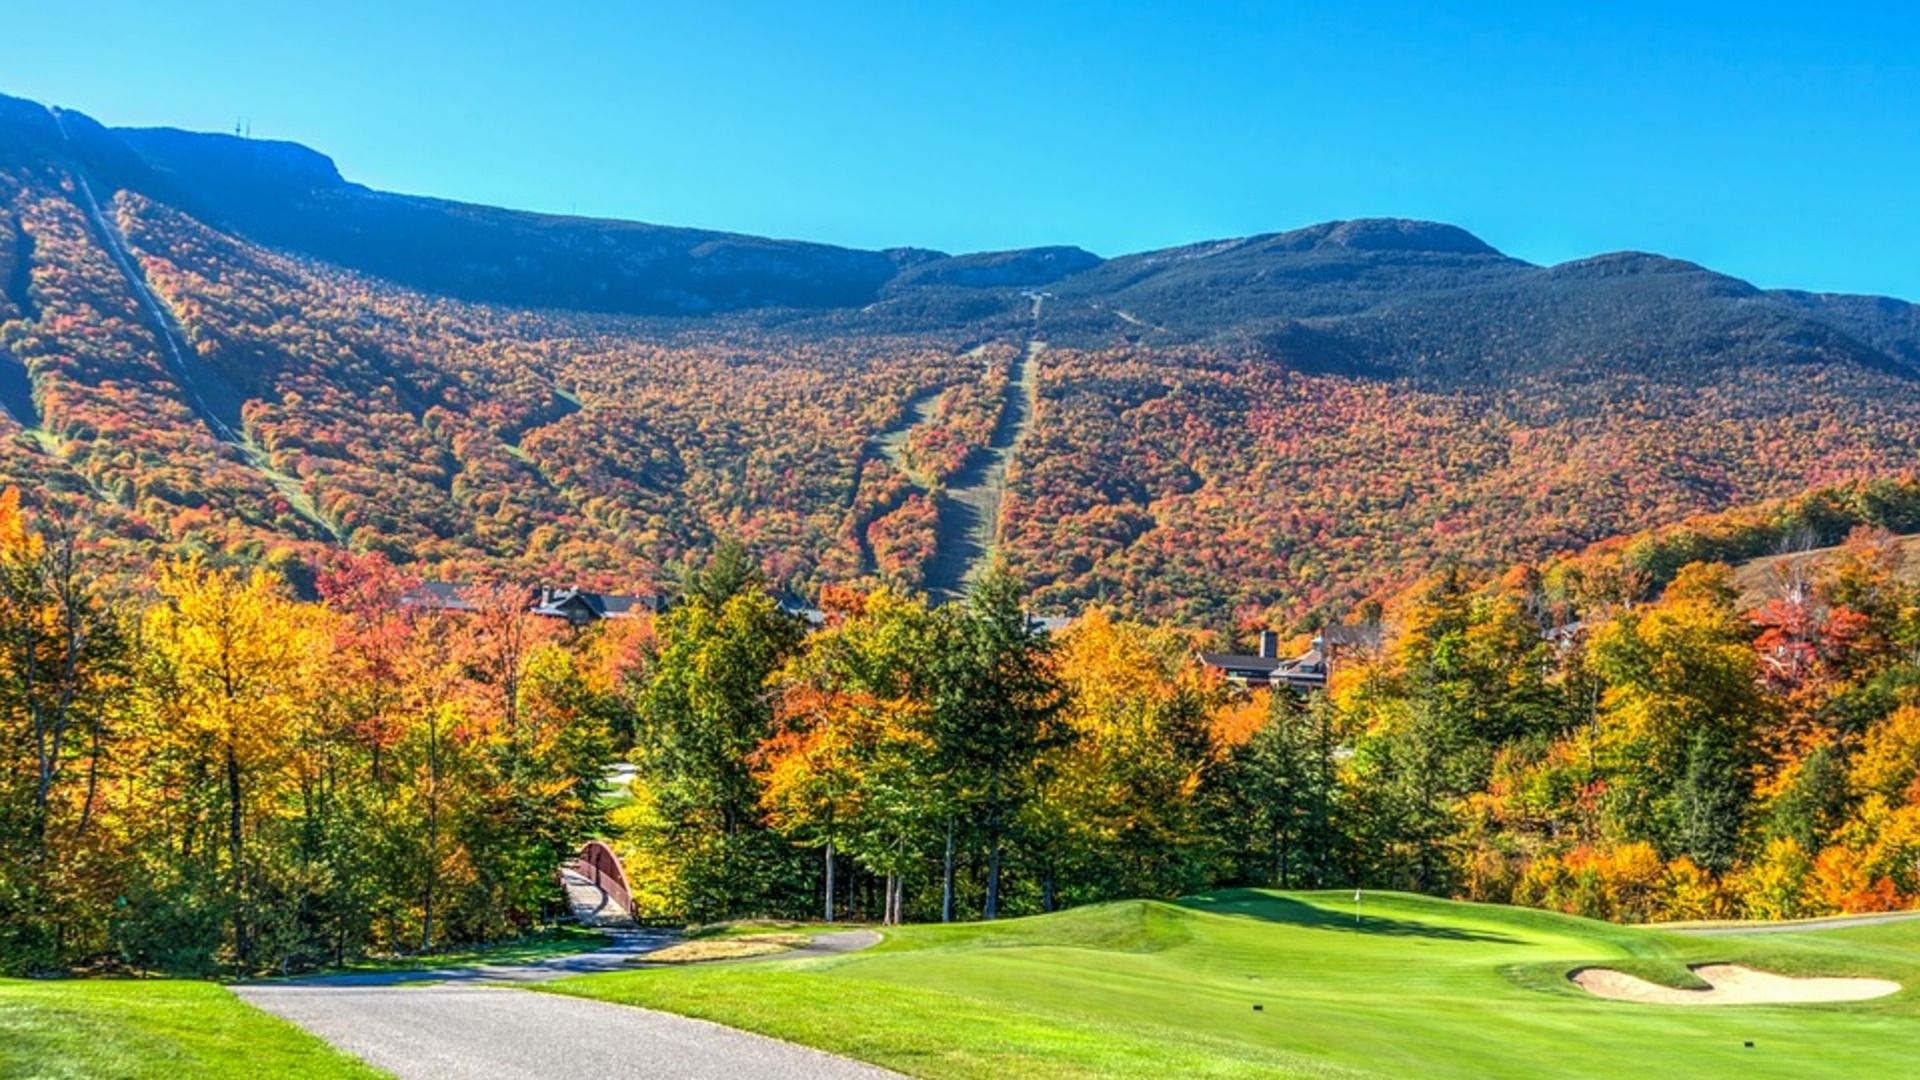 The Best Places To Go This Fall According To Peak Foliage